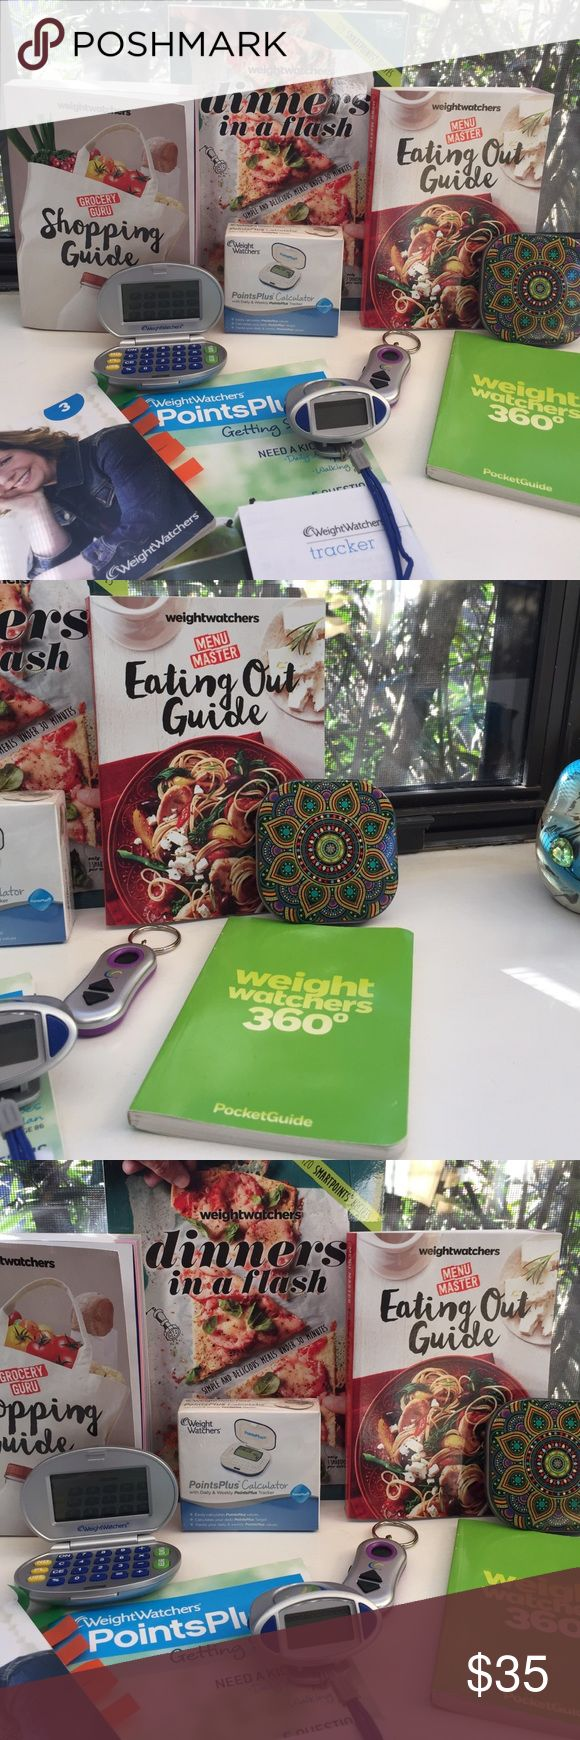 Weight Watchers Bundle 3 WEIGHT WATCHERS Books.....BRAND NEW.....never used!!!  3 points calculators.....1 still in box, one works and the other one needs a new battery....I think!  Also a pedometer and key chain that keeps up with points used through the day!  There are 3 other books 📚 from previous WW plans! Weight Watchers Other